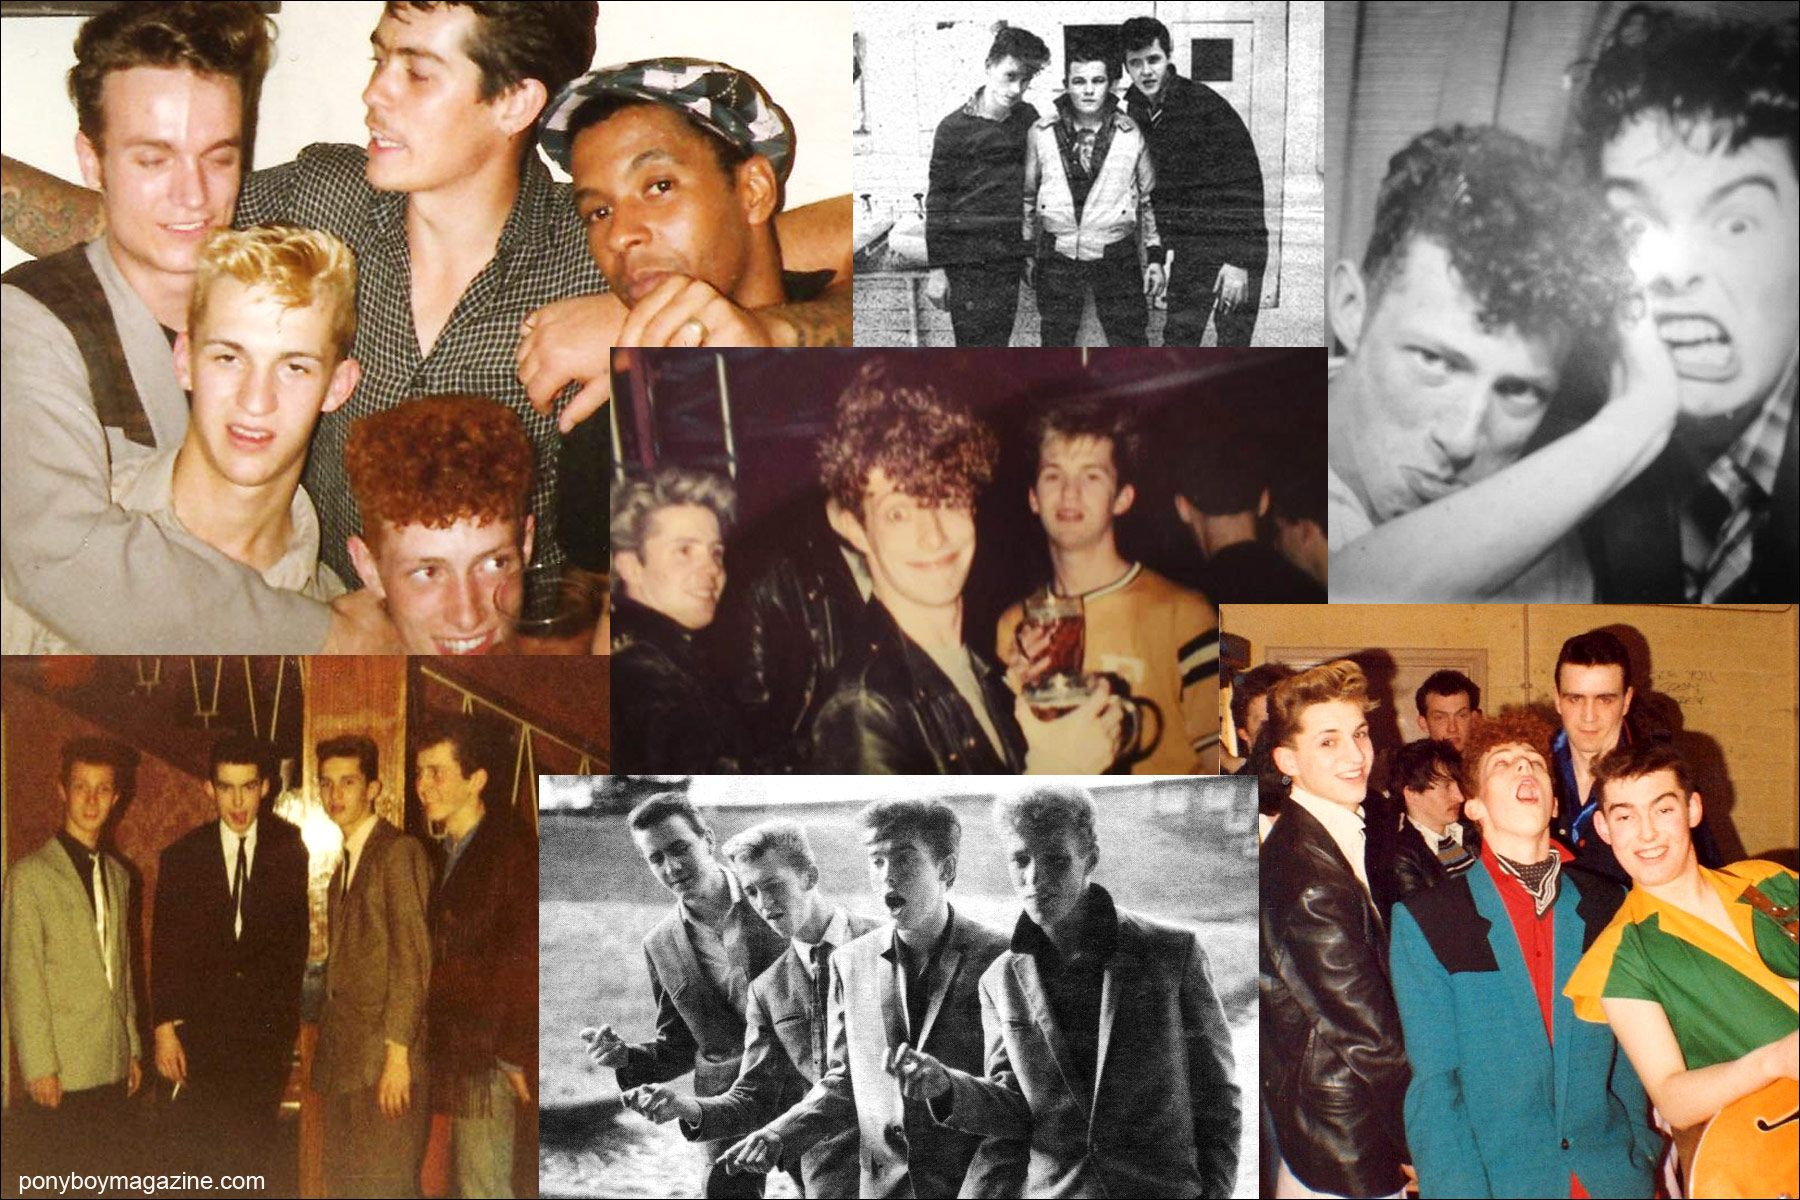 Snapshots from the personal collection of Tim Polecat, lead singer for UK rockabilly band Polecats. Ponyboy Magazine New York.